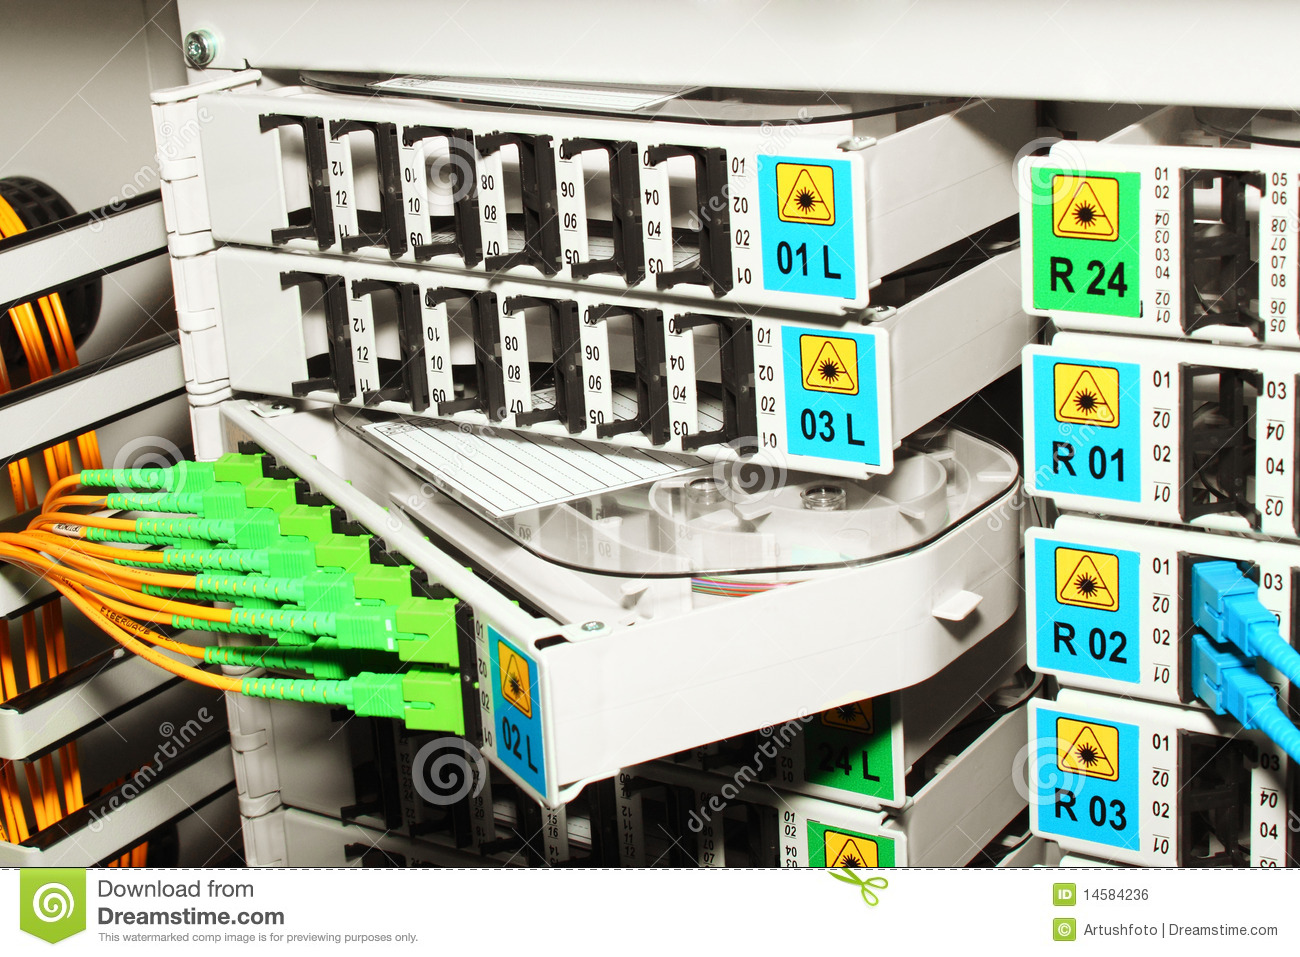 Cable Management System : Fiber optic cable management system stock photo image